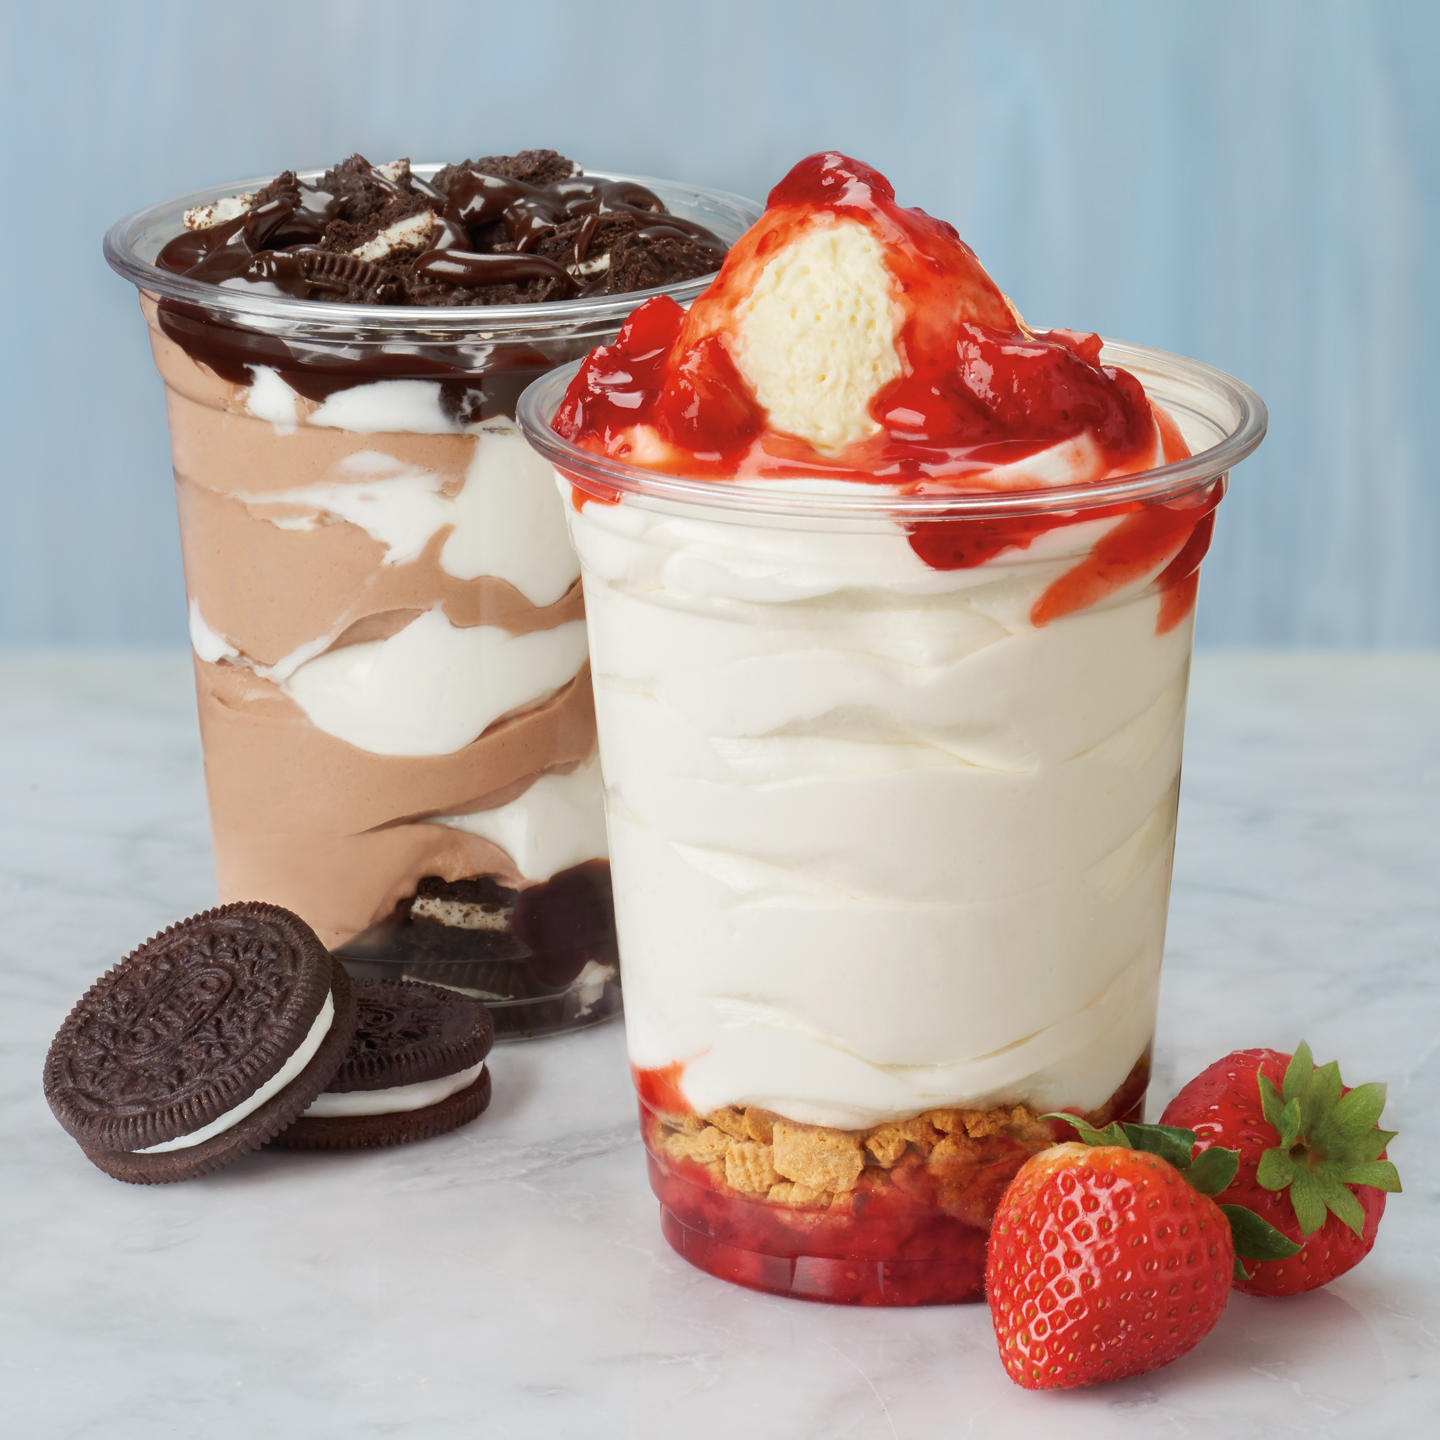 Flavor On Top Of Flavor. Layers and layers of rich flavor make our Stackers a treat you can keep digging in to. Choose from Strawberry Cheesecake Stacker or our Oreo Fudge Stacker.